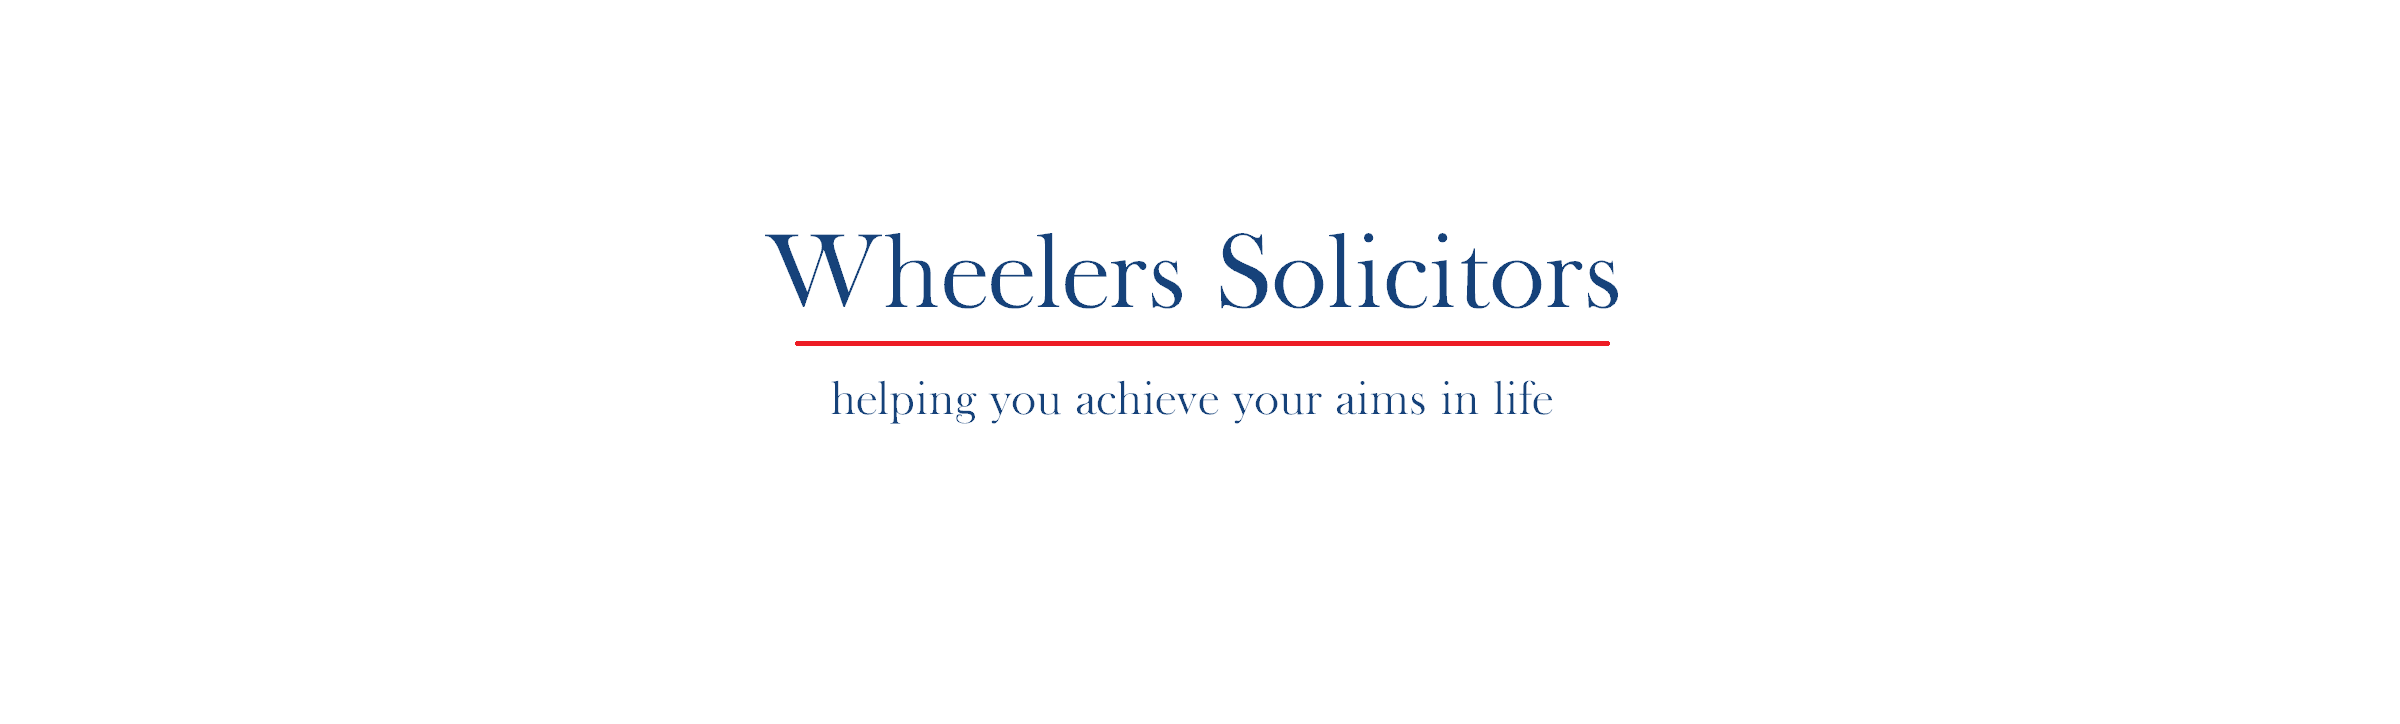 Wheelers Solicitors Banner Picture